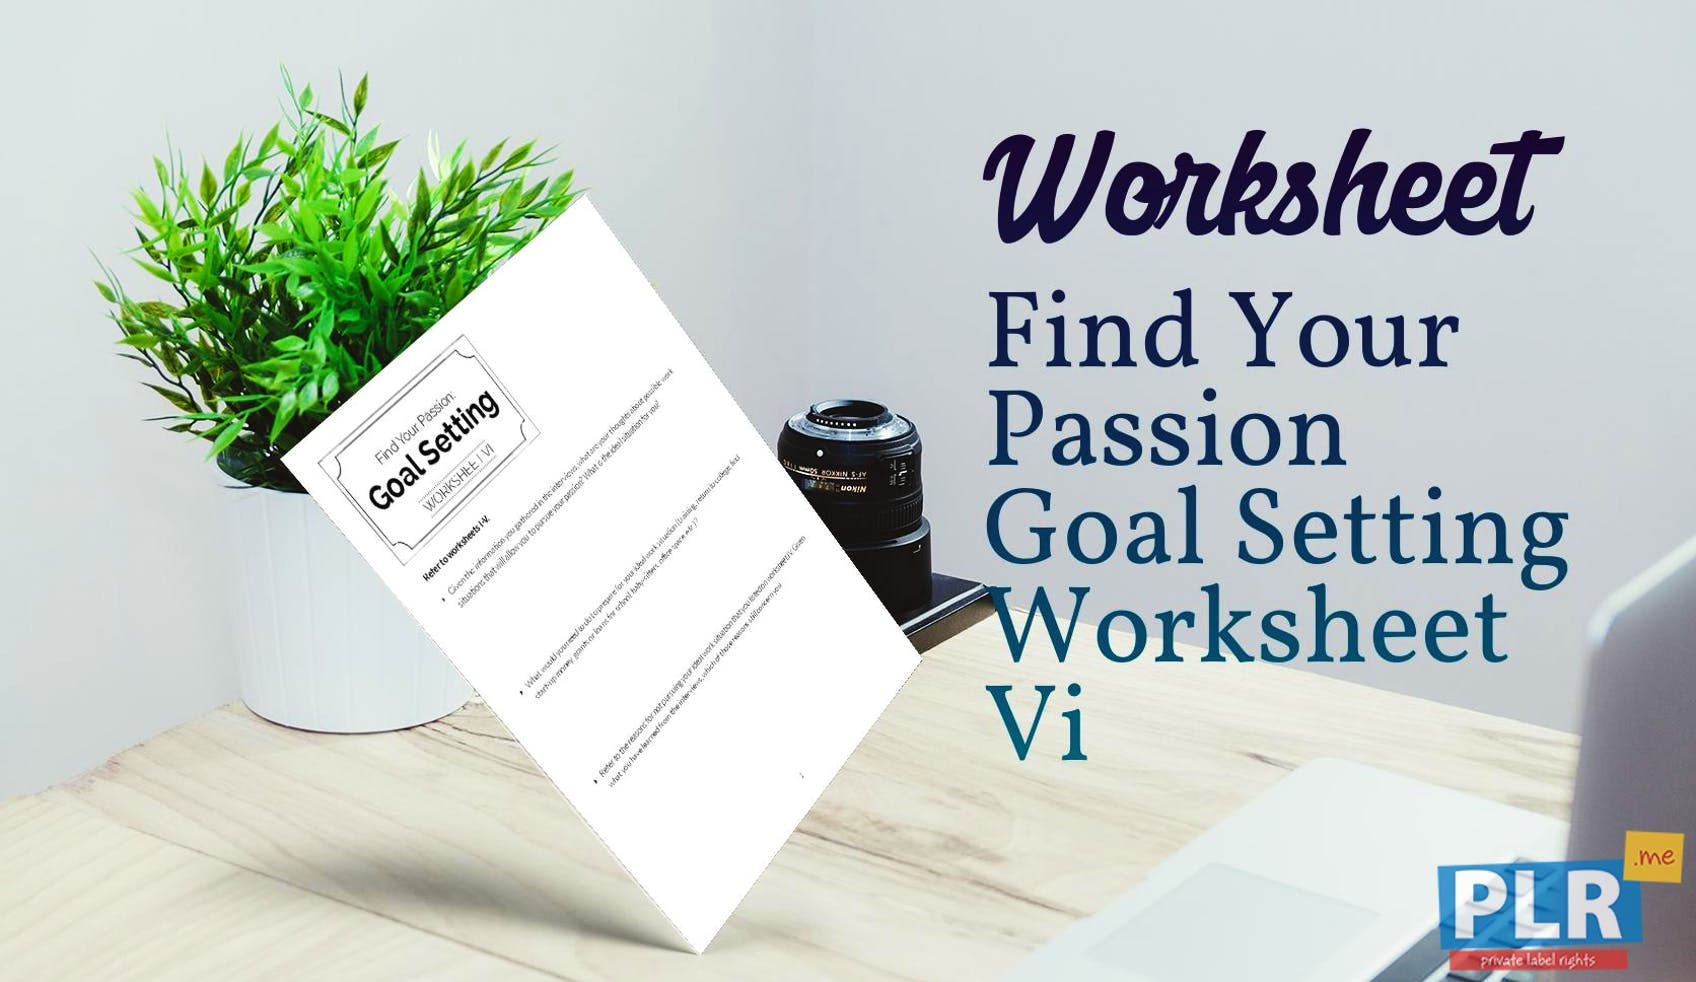 Find Your Passion Goal Setting Worksheet Vi